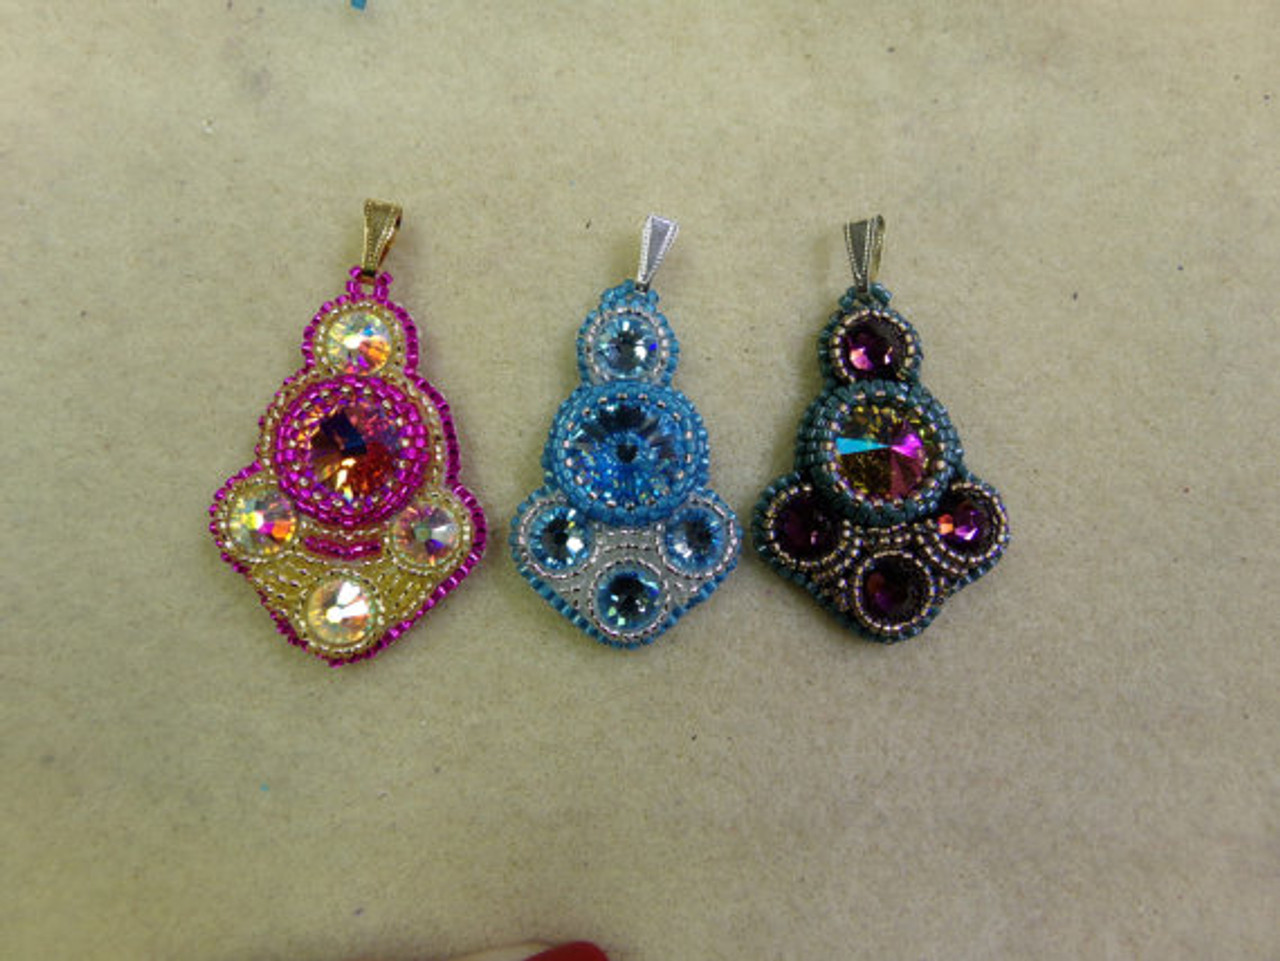 Bollywood Bead Embroidery Pendant Tutorial